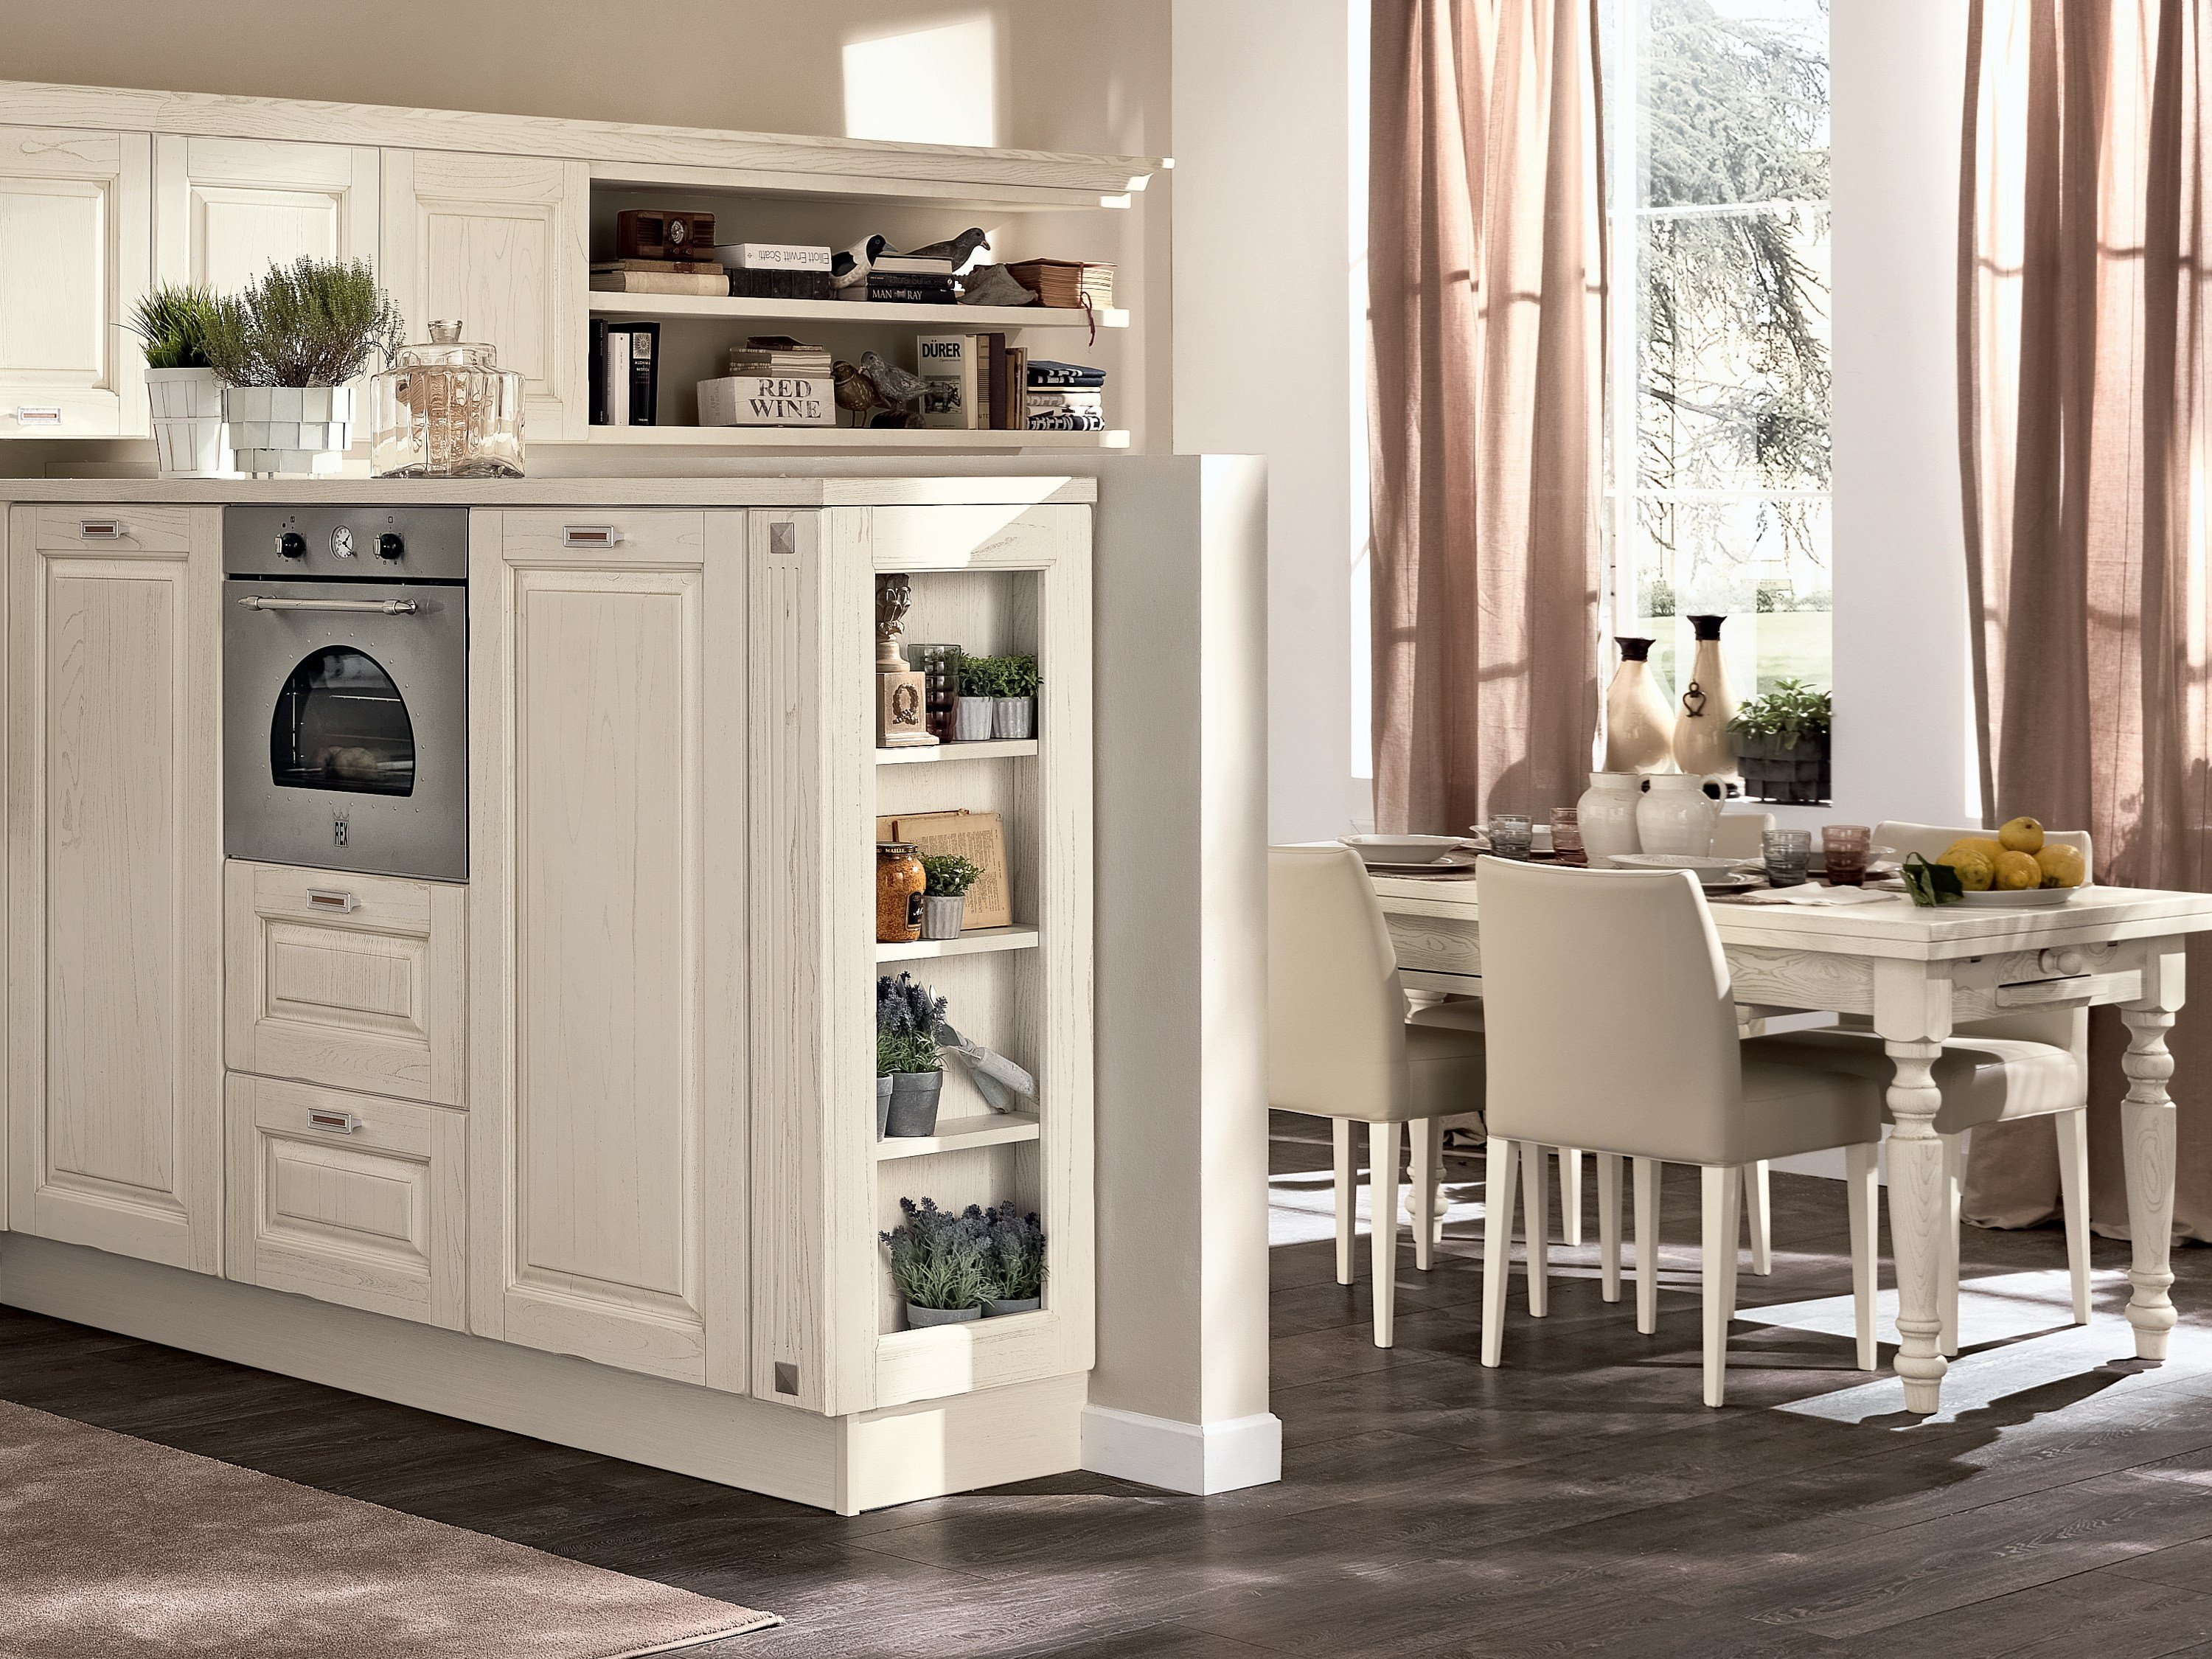 LAURA Kitchen with handles by Cucine Lube